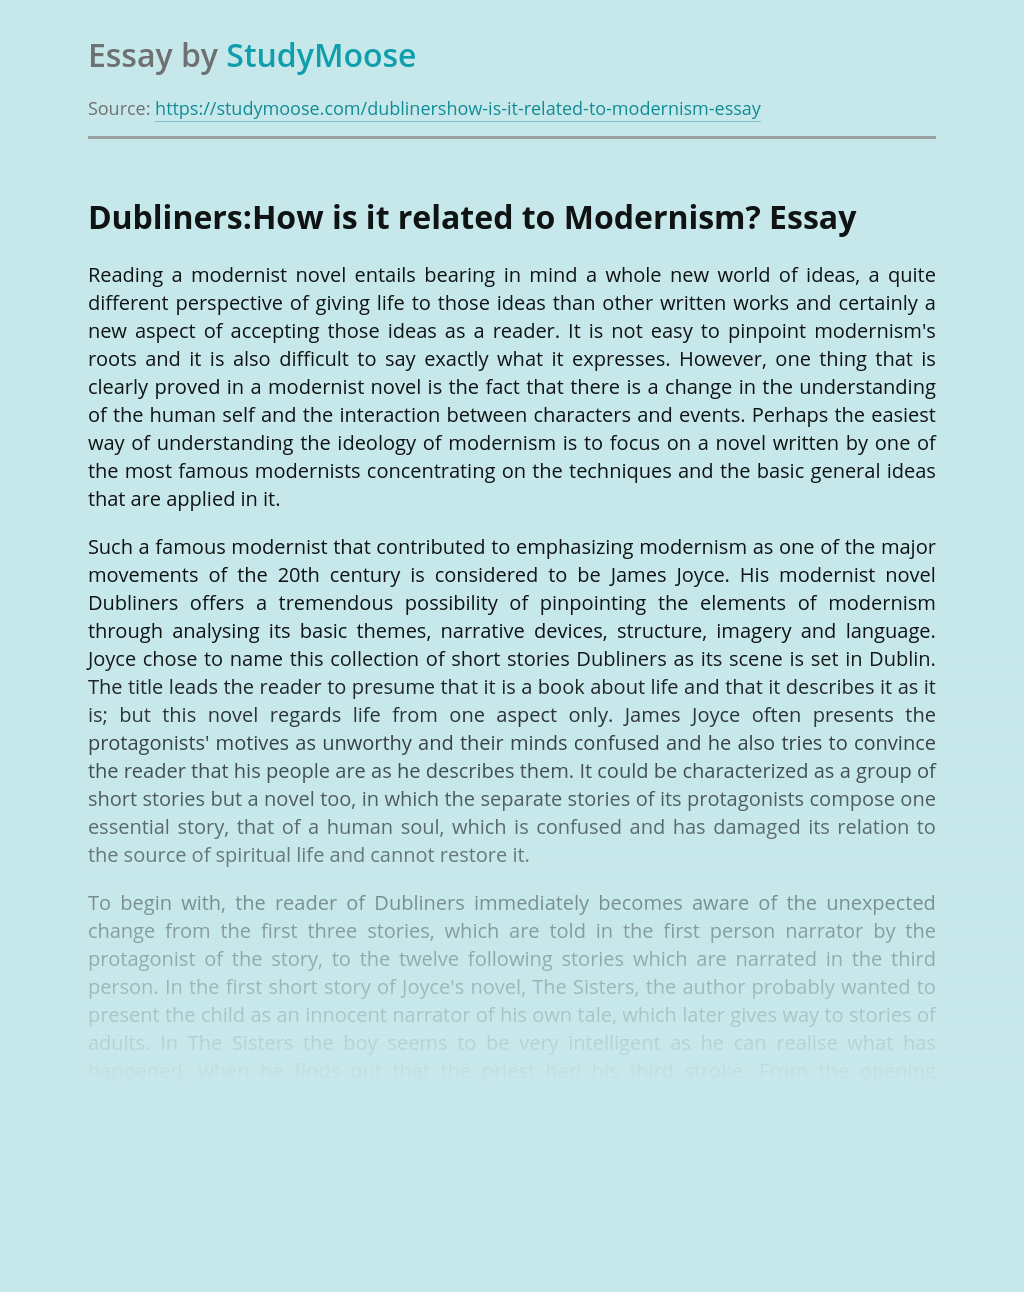 Dubliners:How is it related to Modernism?